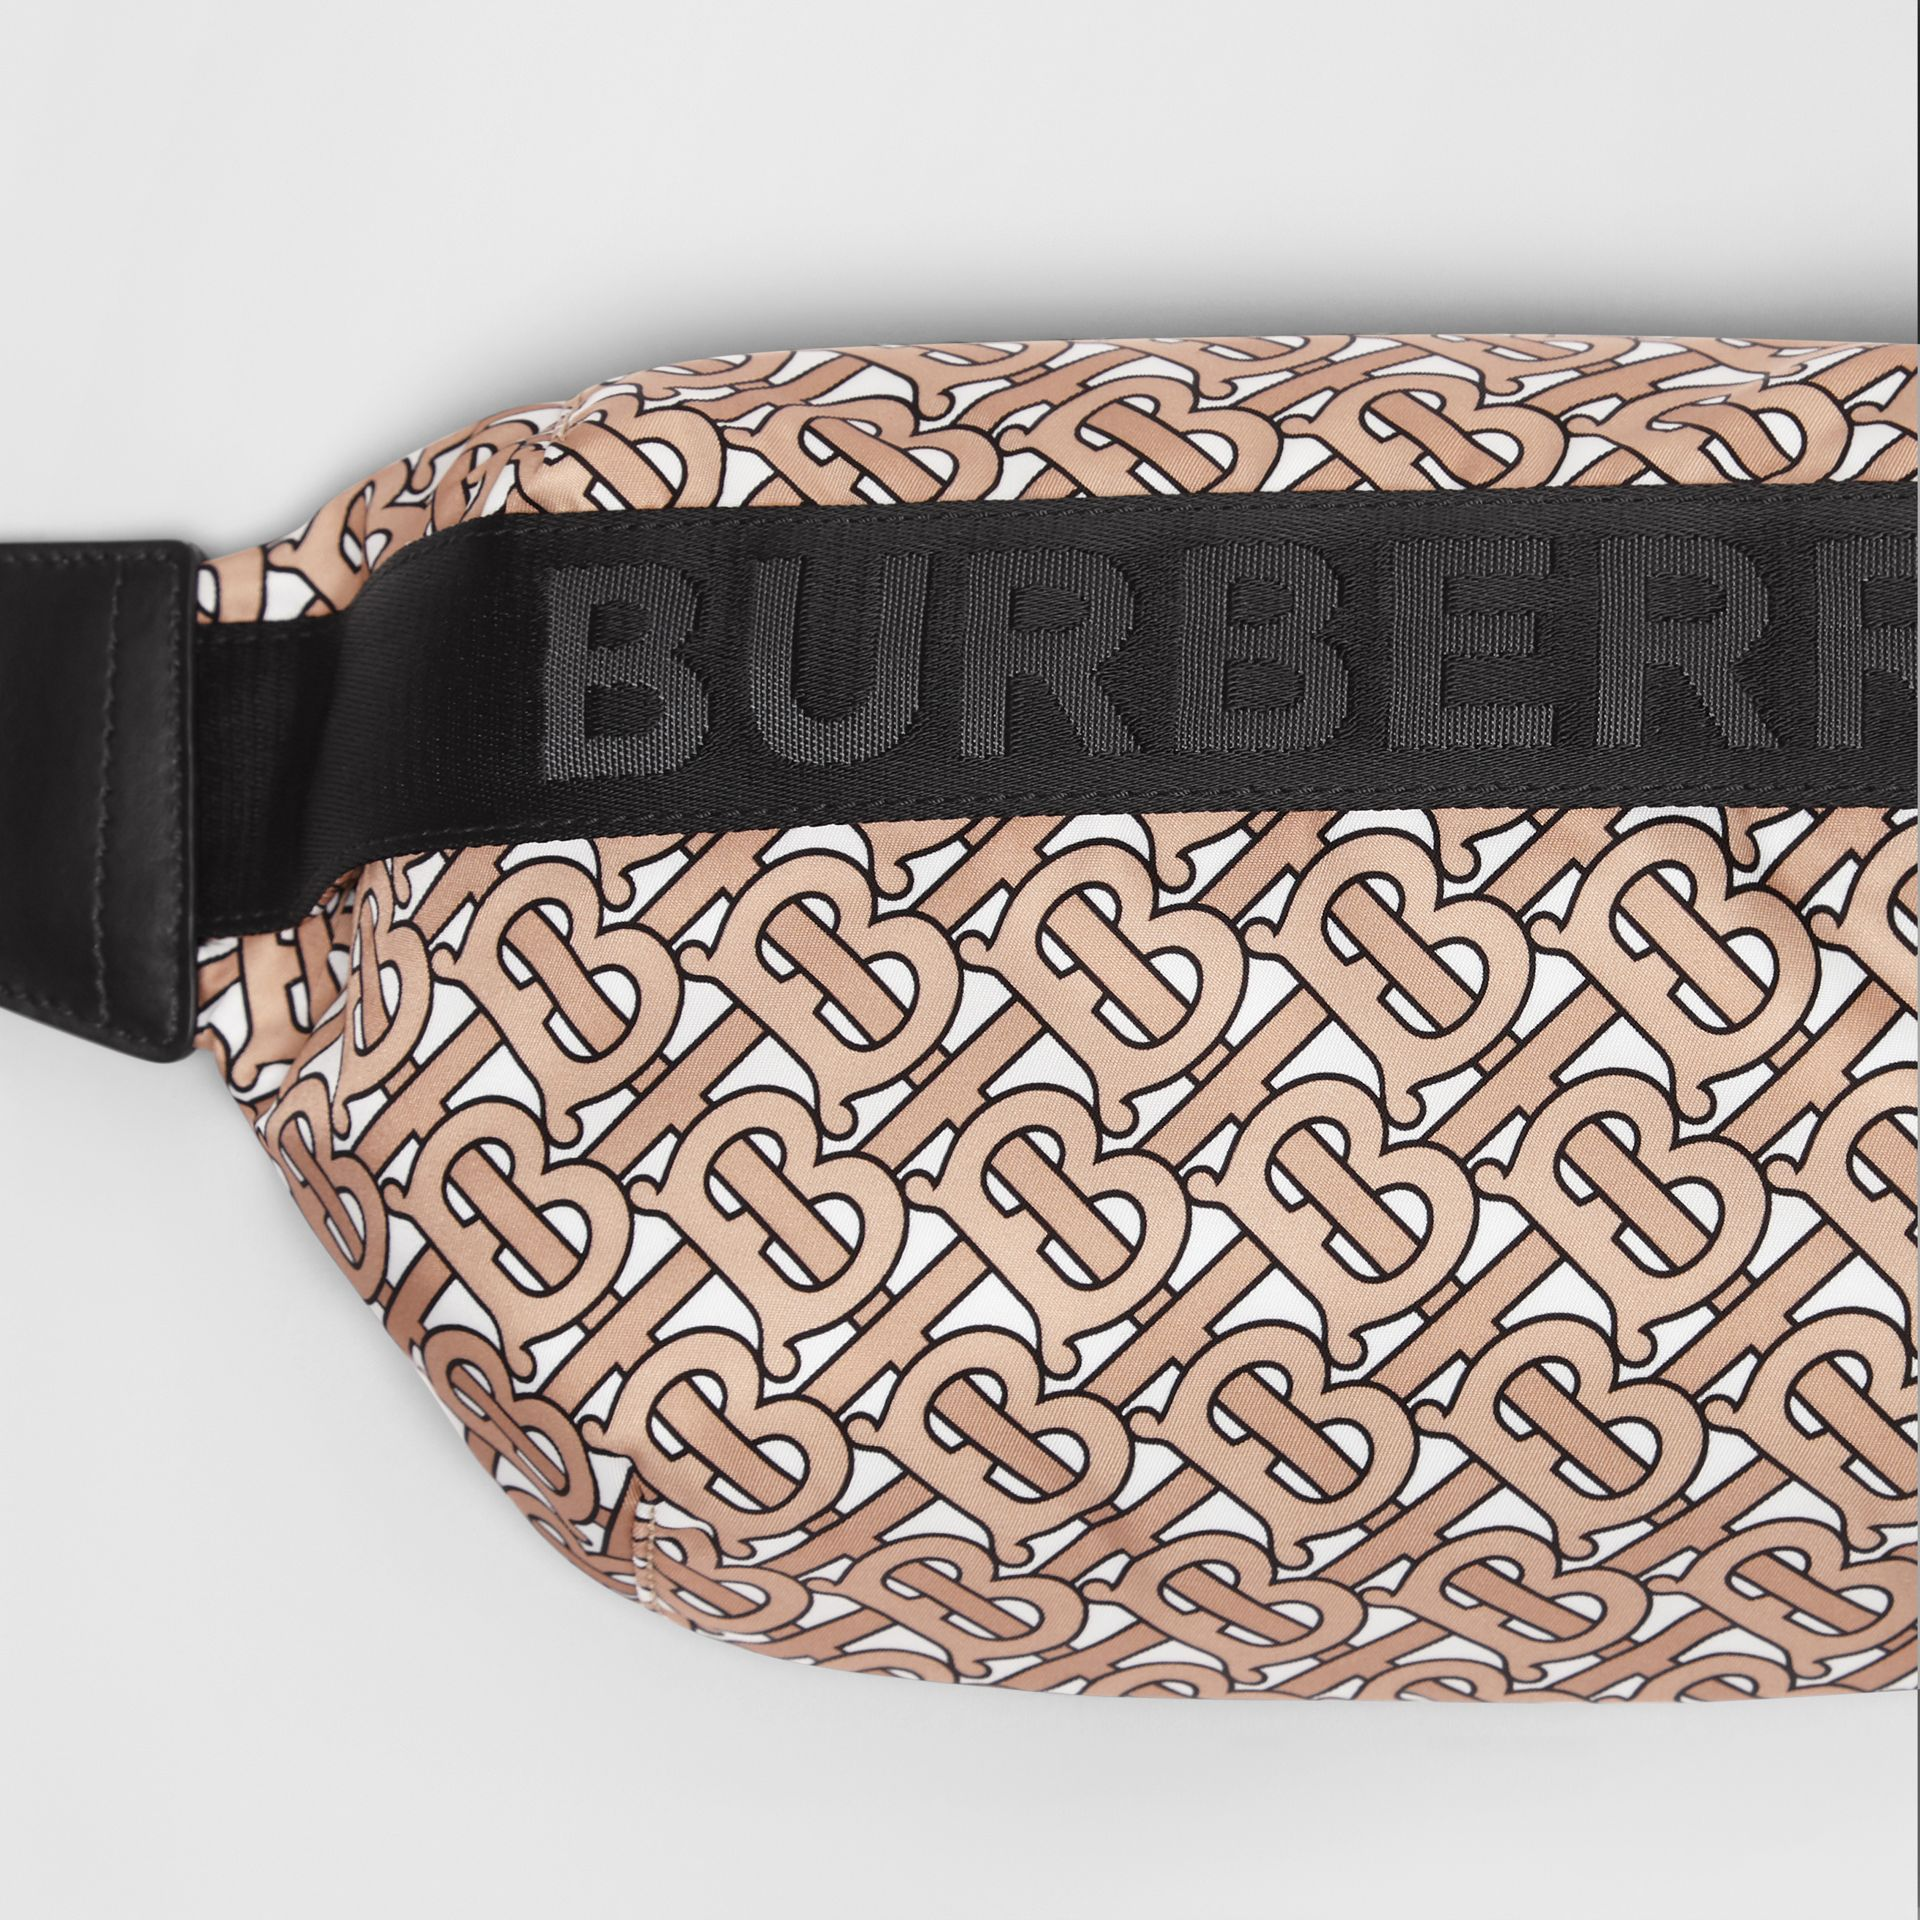 Medium Monogram Print Bum Bag in Beige | Burberry - gallery image 1